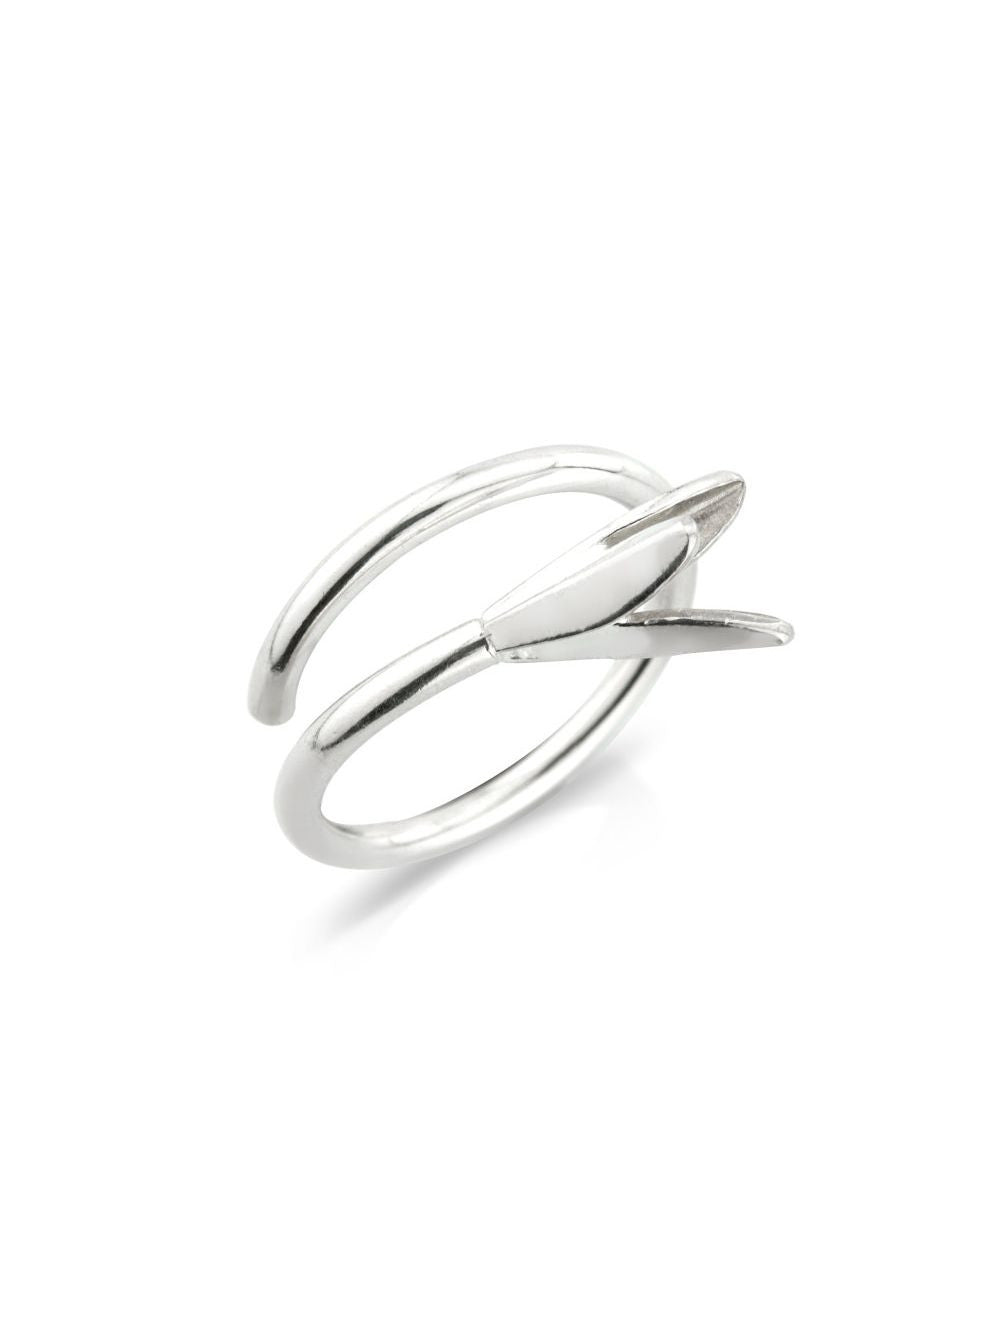 Hekla Sterling Silver Blossum Ring by Aurum - Art Jewellery Store: Song of Jewellery